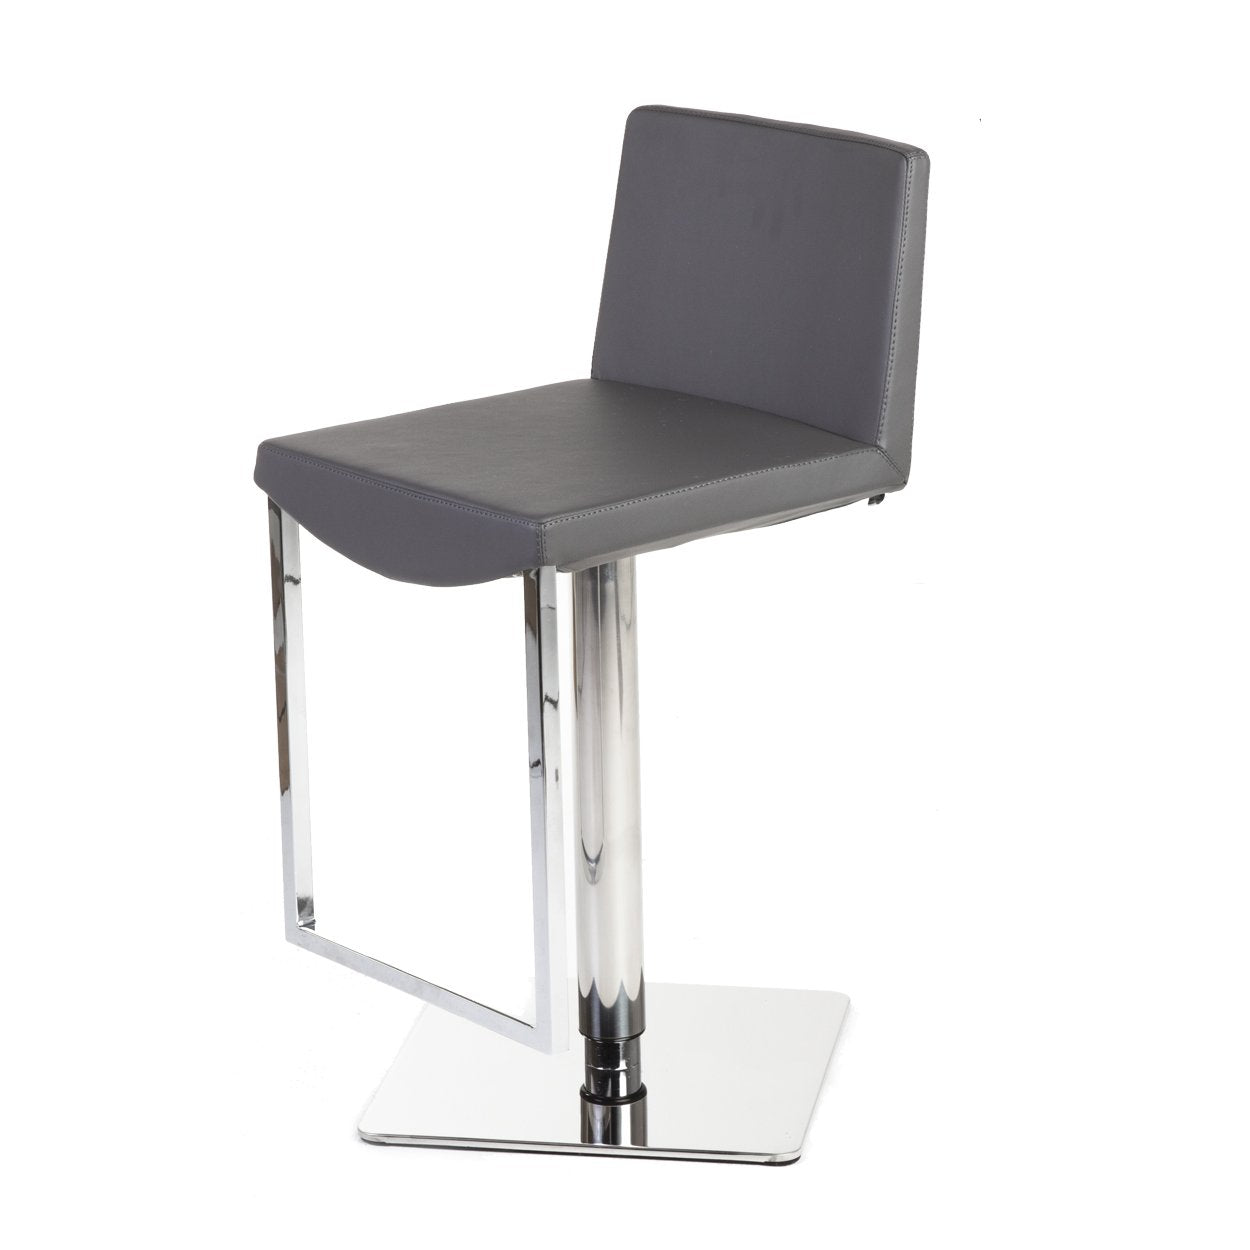 [FJC1603GREY] Caitriona Stool Sale